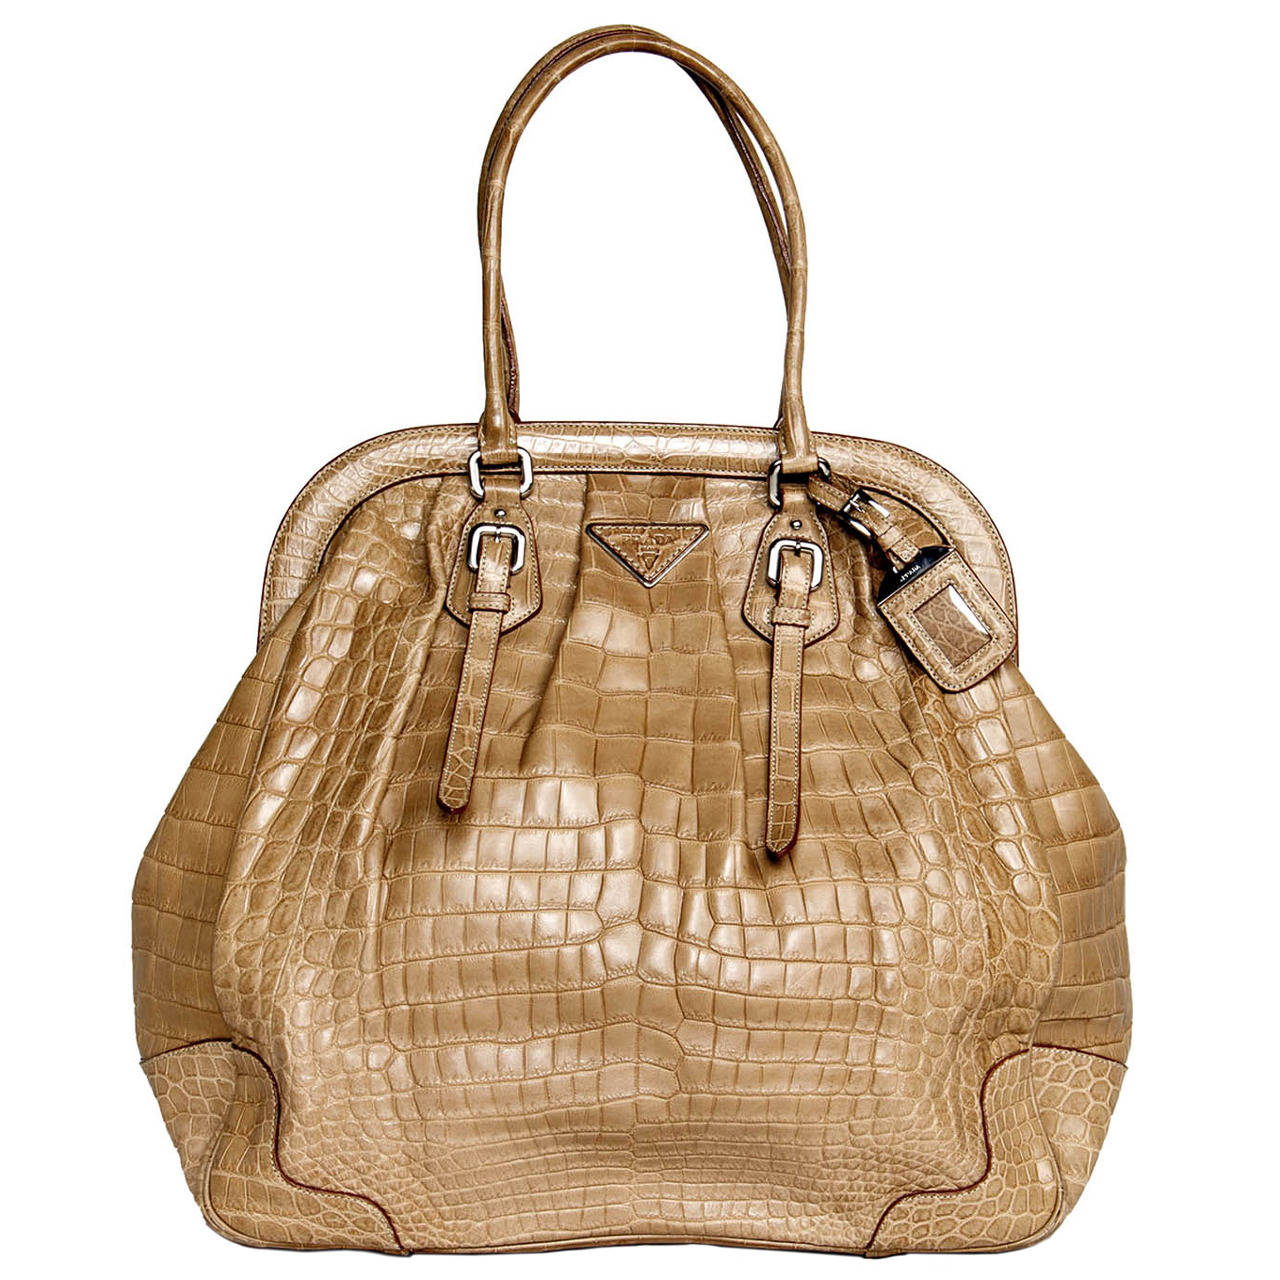 441d1f625060 Prada Large Frame Light brown Crocodile Bag For Sale at 1stdibs